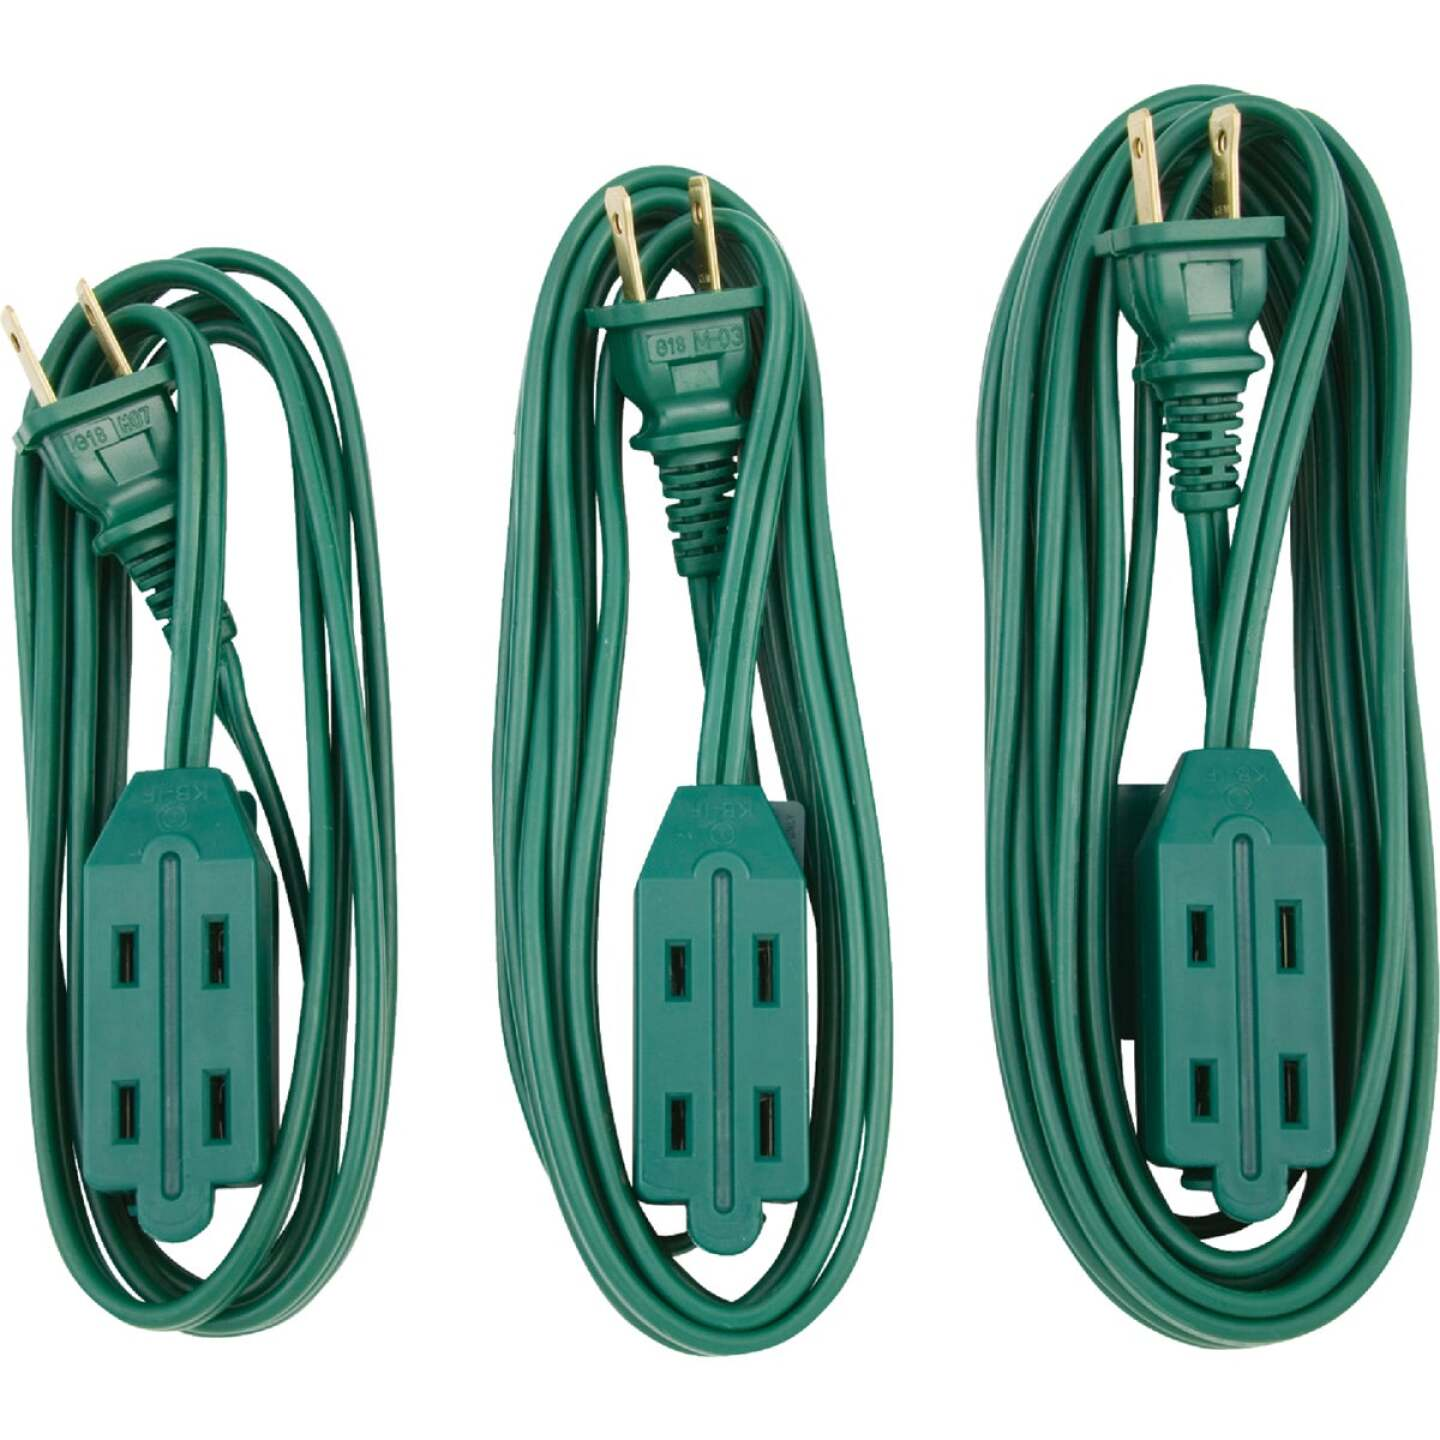 Do it 6 Ft./9 Ft./15 Ft. 16/2 Extension Cord Set (3-Pack) Image 1